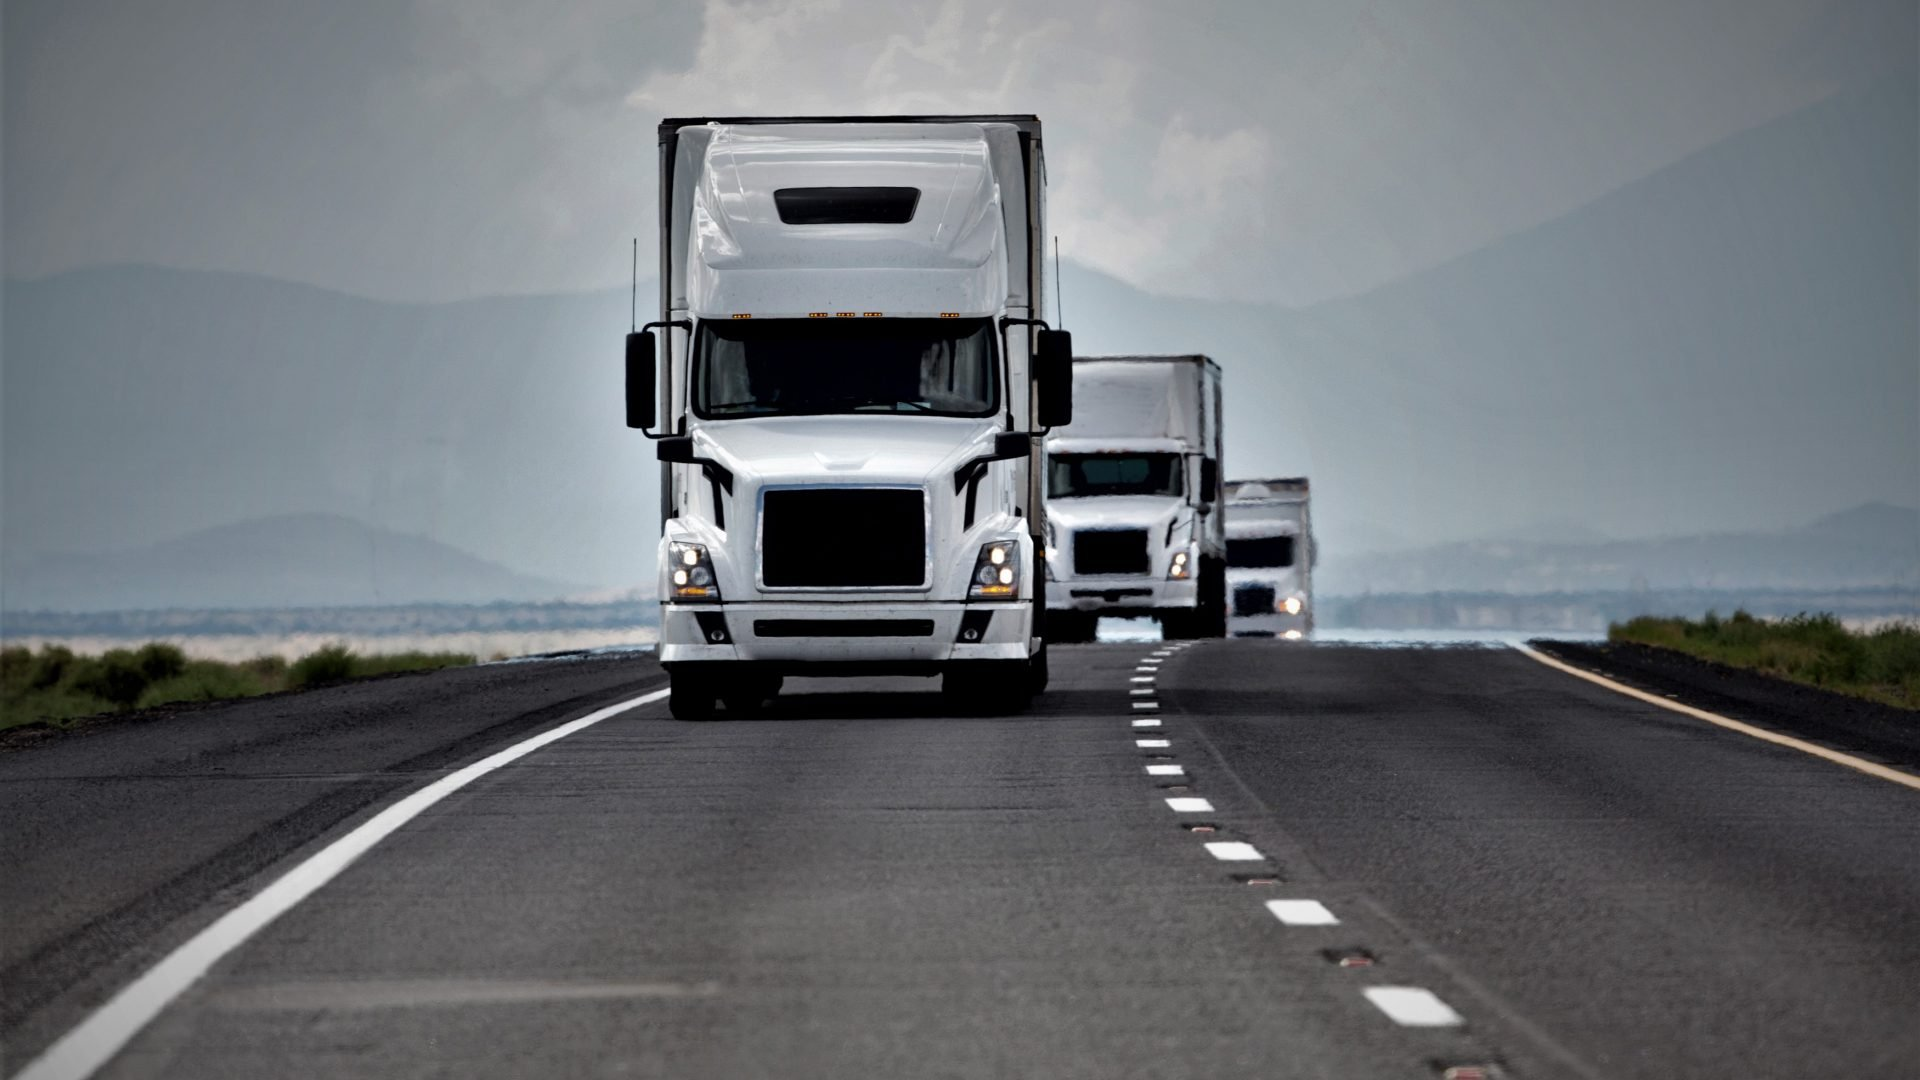 Three white trucks in a convoy on an interstate highway